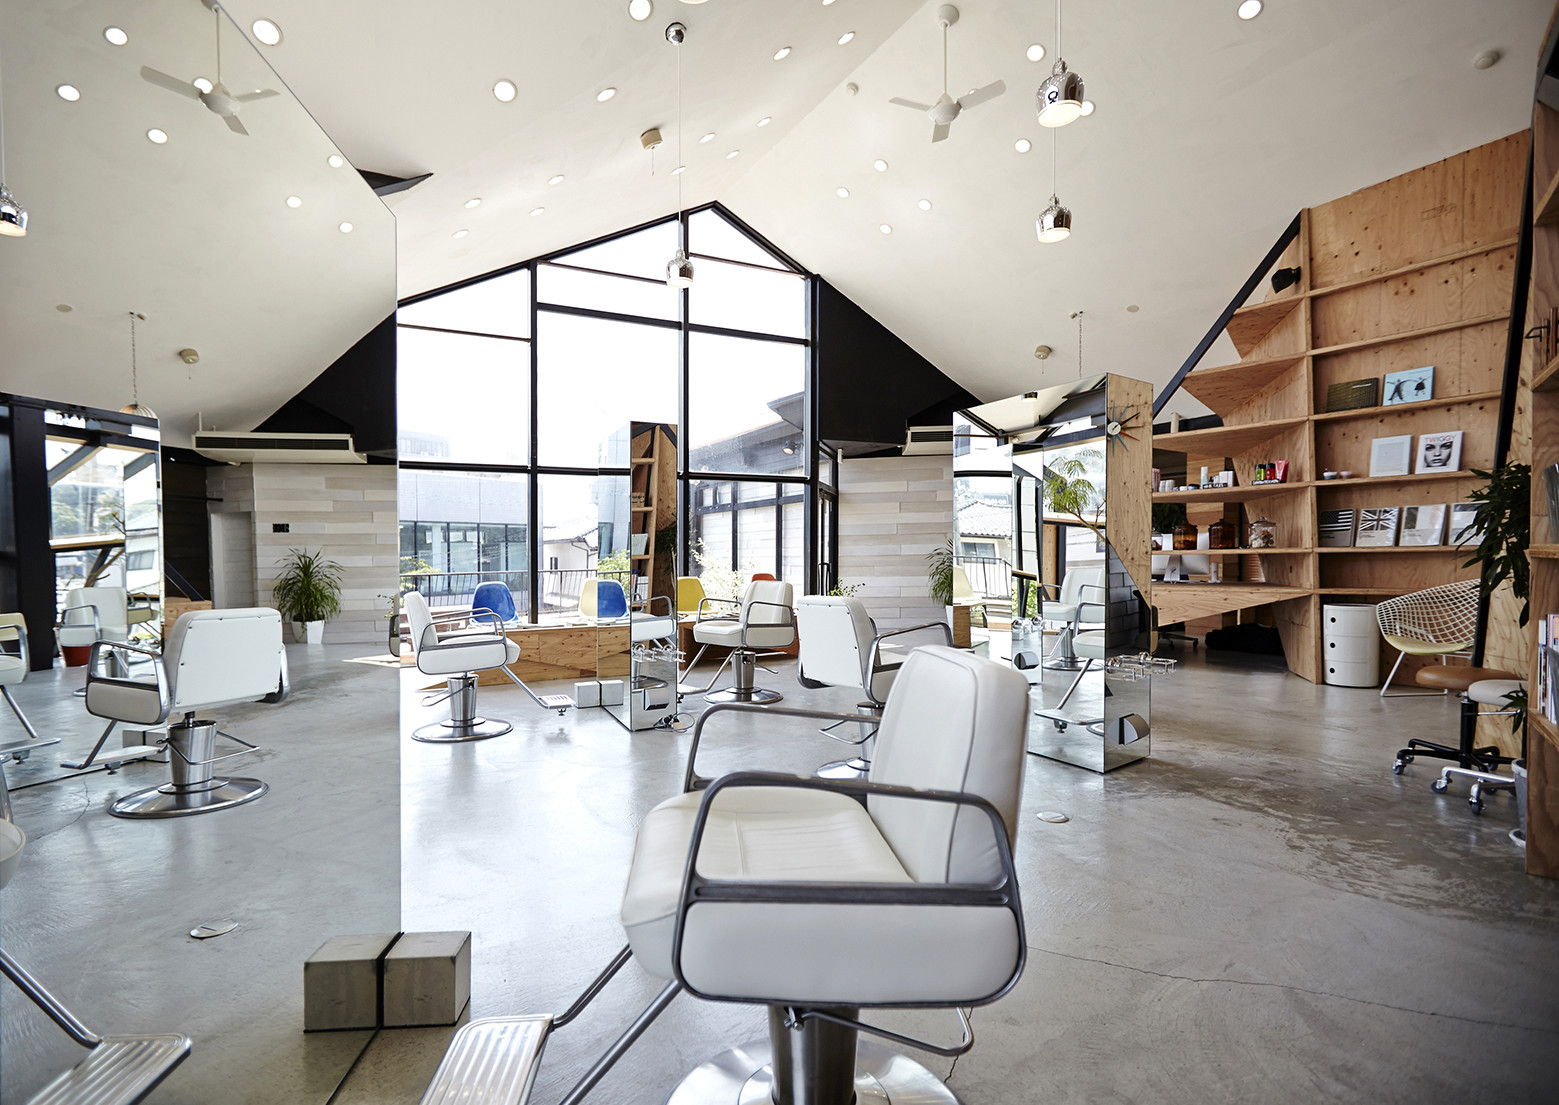 hair salon slundre bhis archdaily